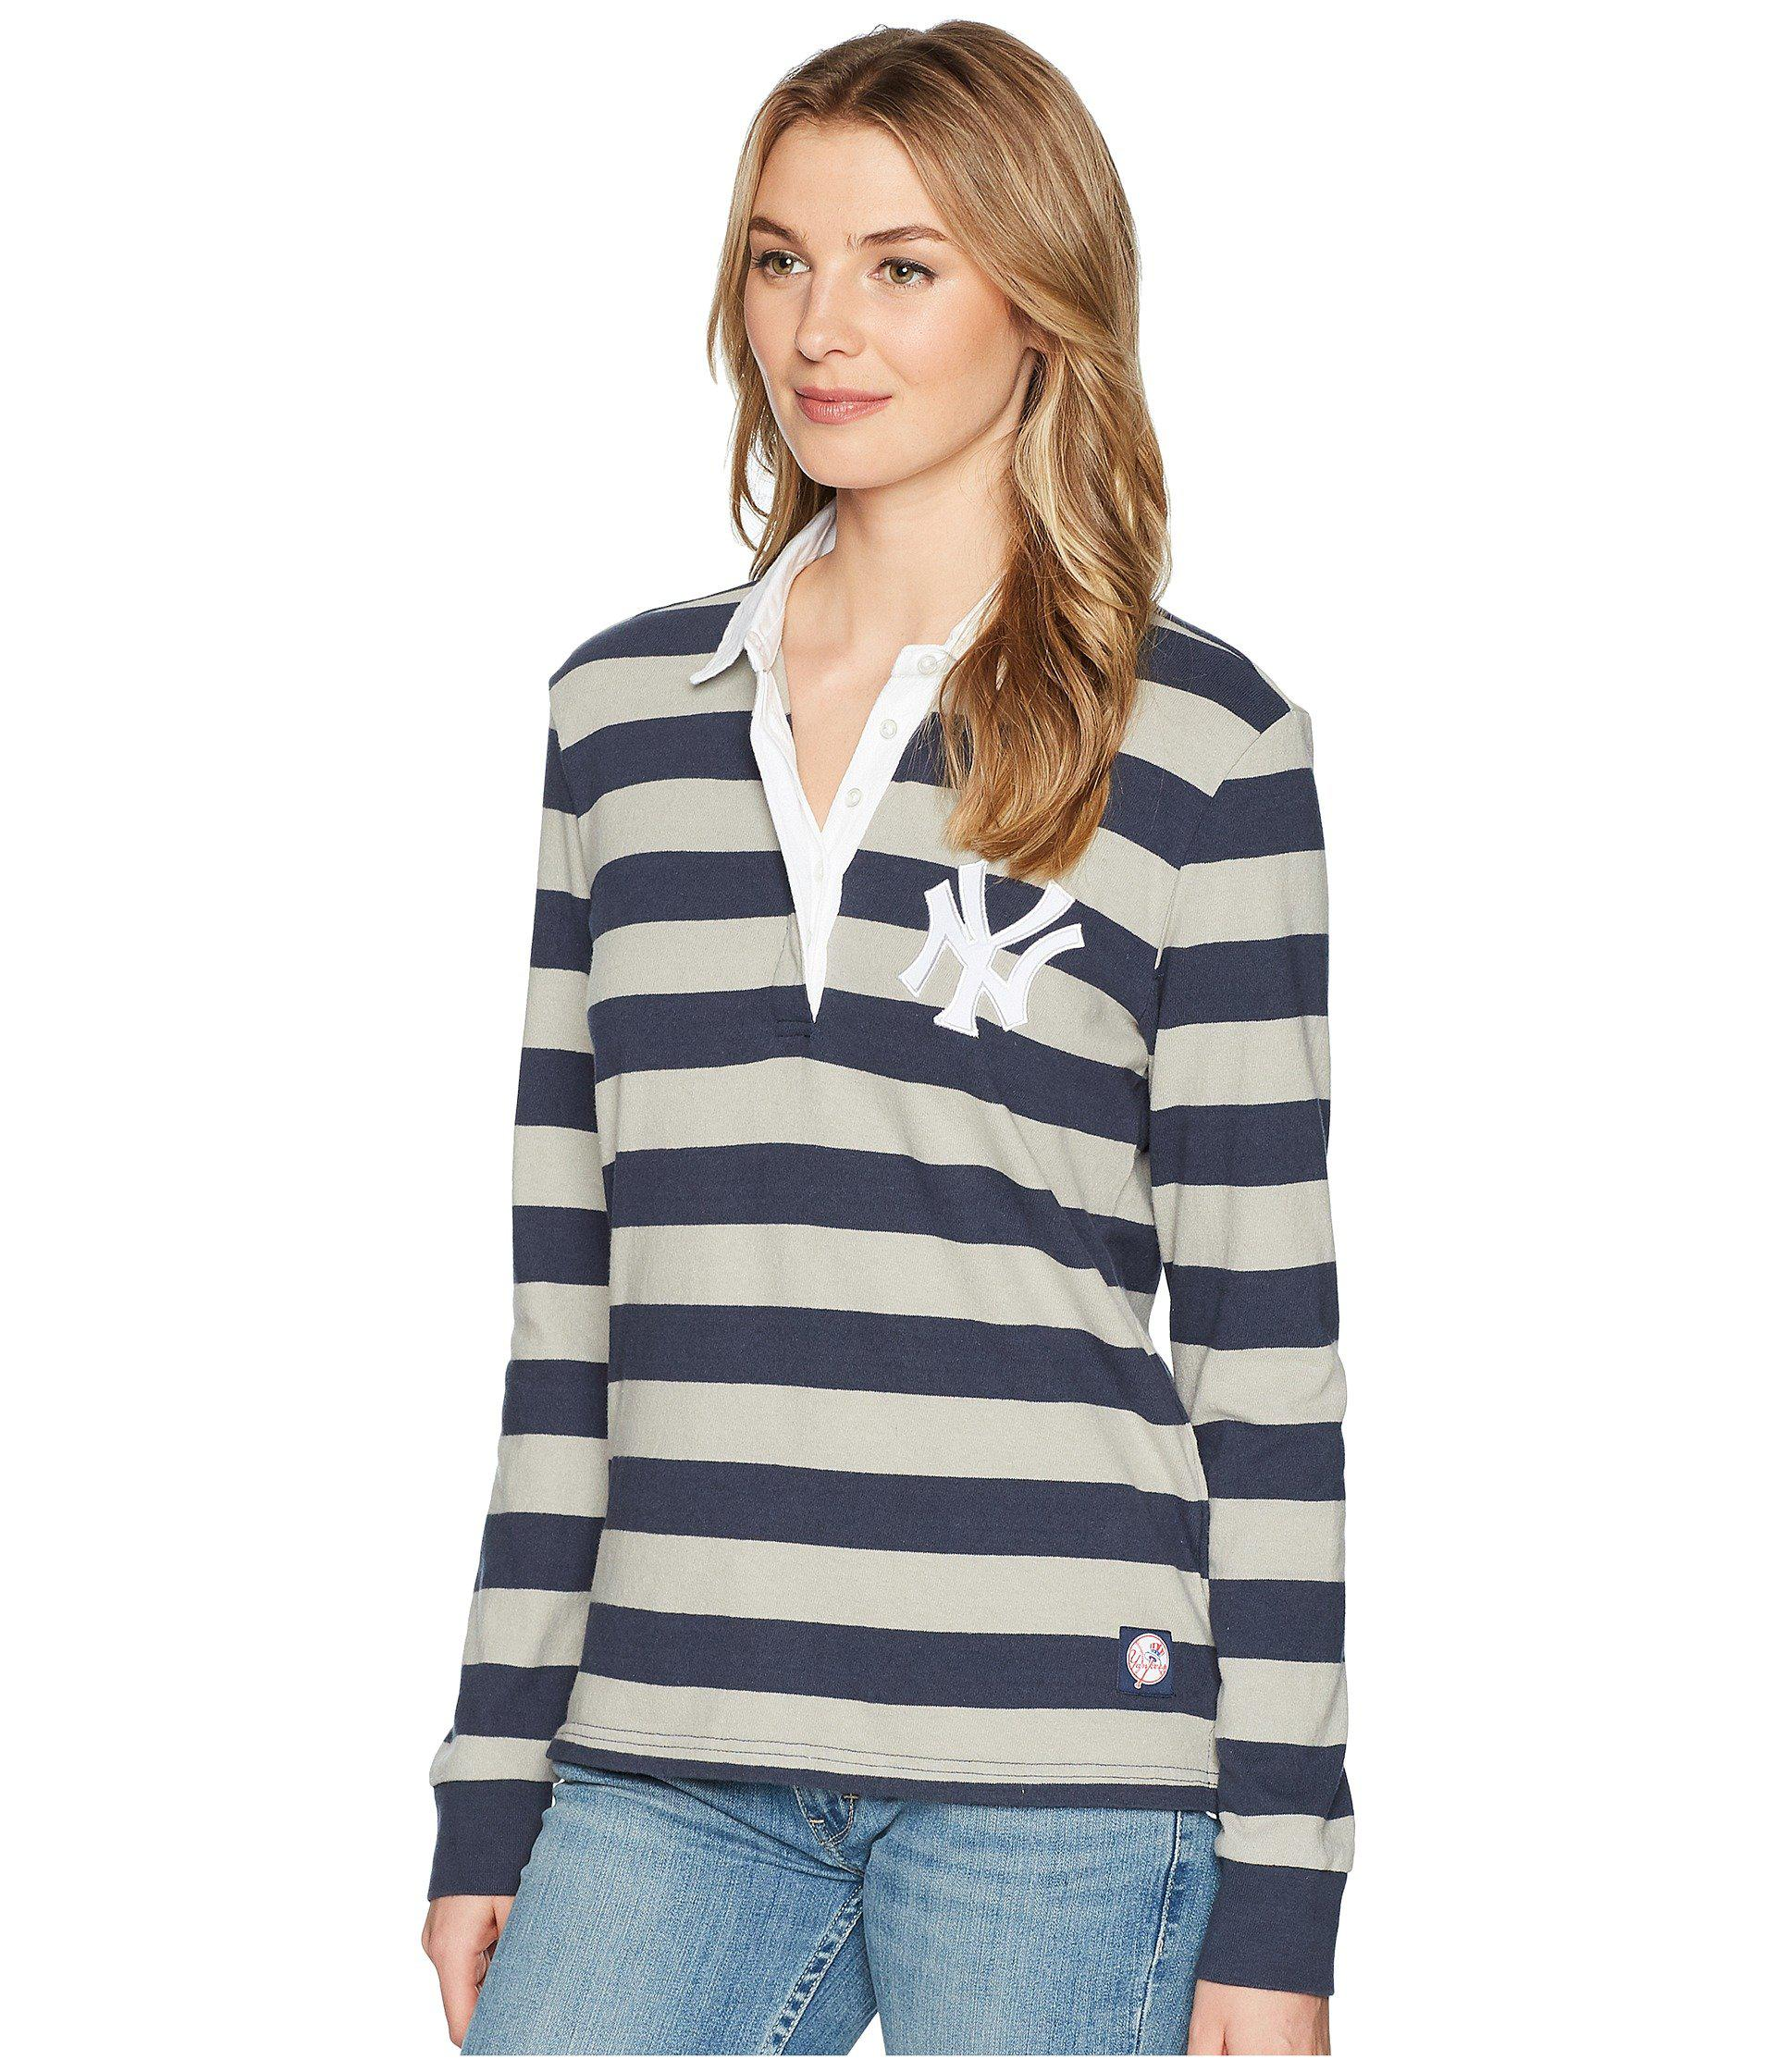 23fe1144c9 Lyst - Levi s Ny Yankees Striped Rugby Shirt in Blue - Save 44%